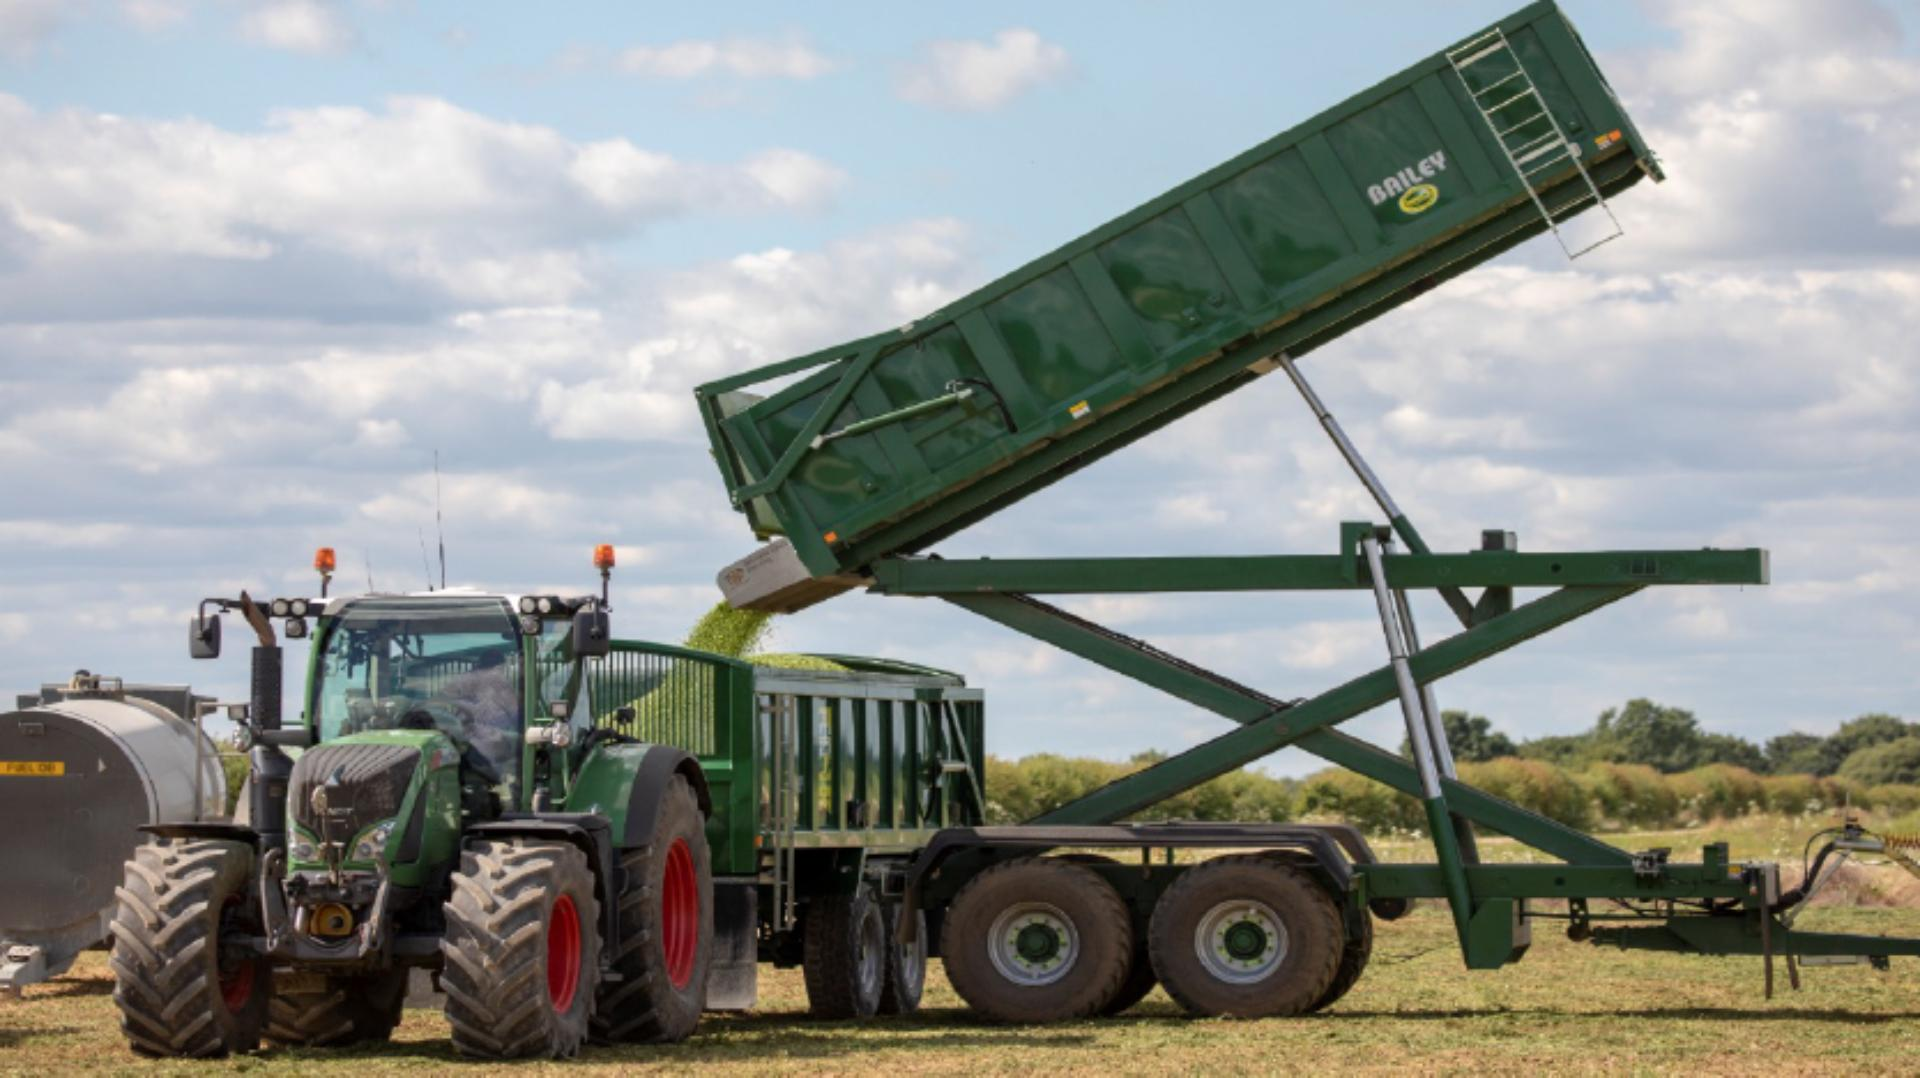 Pea harvest trailers being emptied into larger capacity trailers